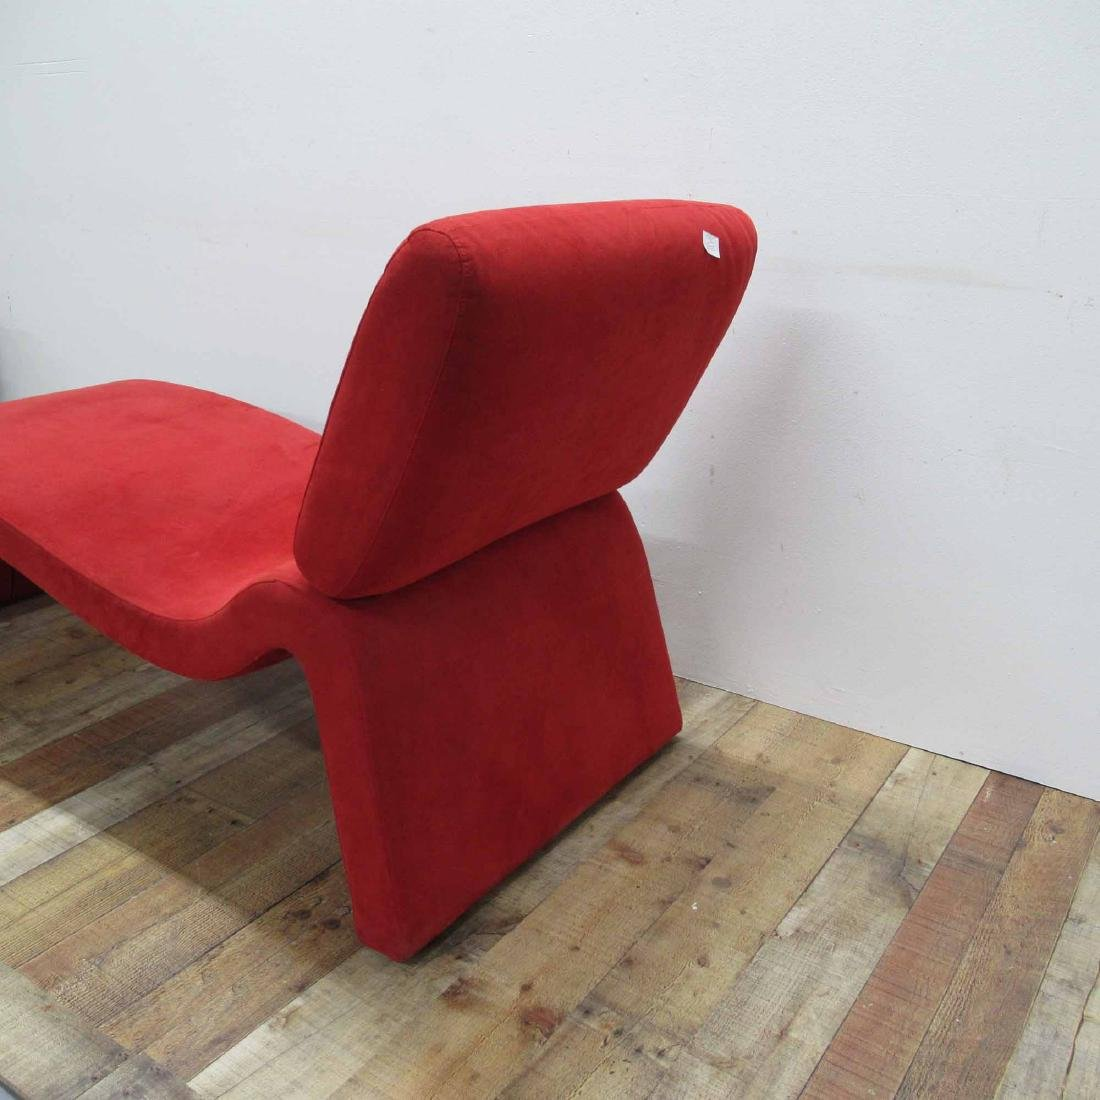 RED SUEDE UPHOLSTERED CHAISE LOUNGE CHAIR - 3